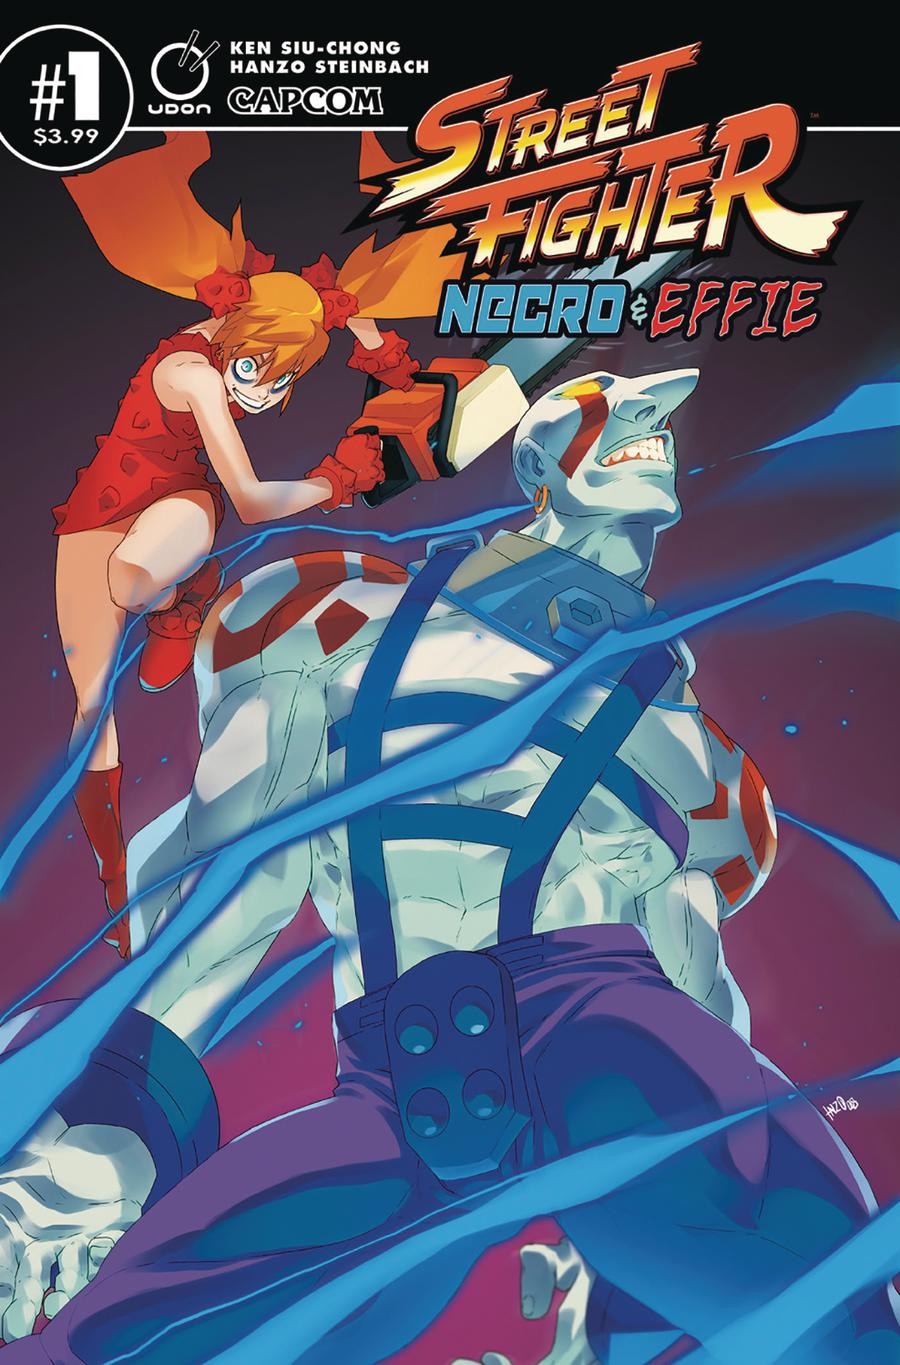 Street Fighter Necro & Effie #1 Cover A Regular Hanzo Steinbach Cover